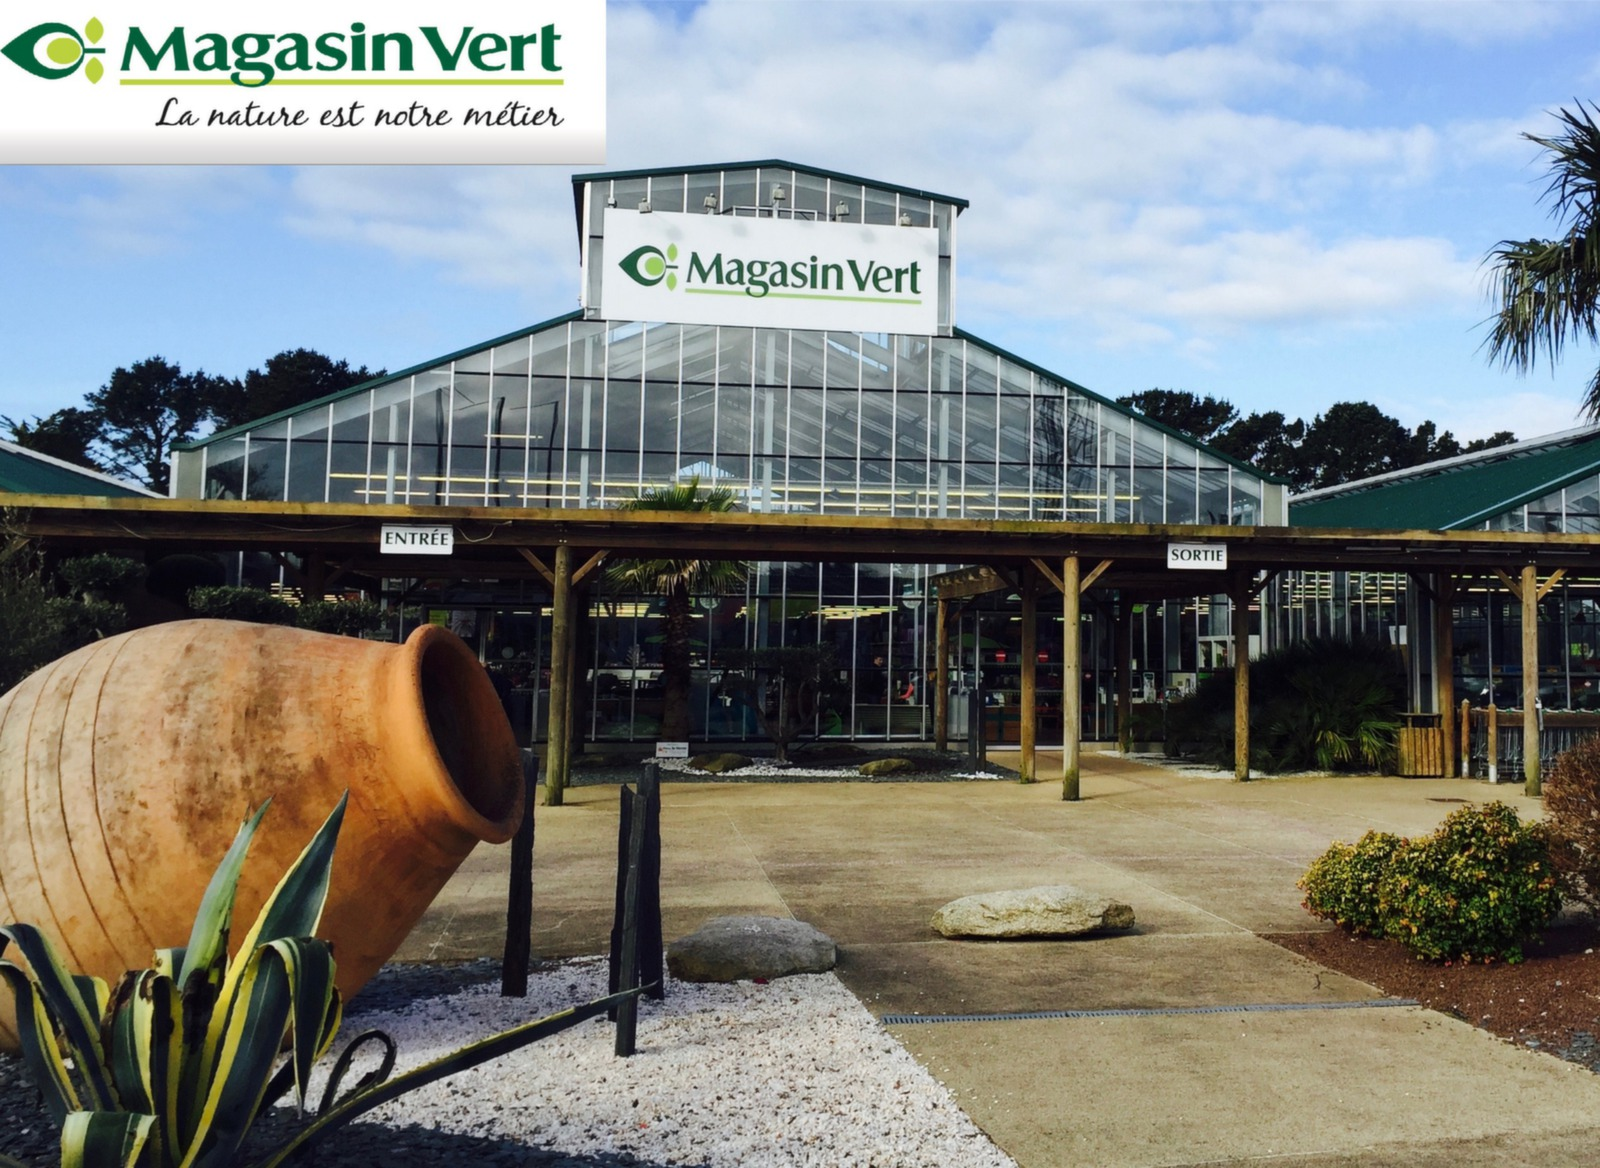 Magasin Vert Salon De Jardin Magasin Meuble Lannion. Awesome Salon De Jardin Magasin